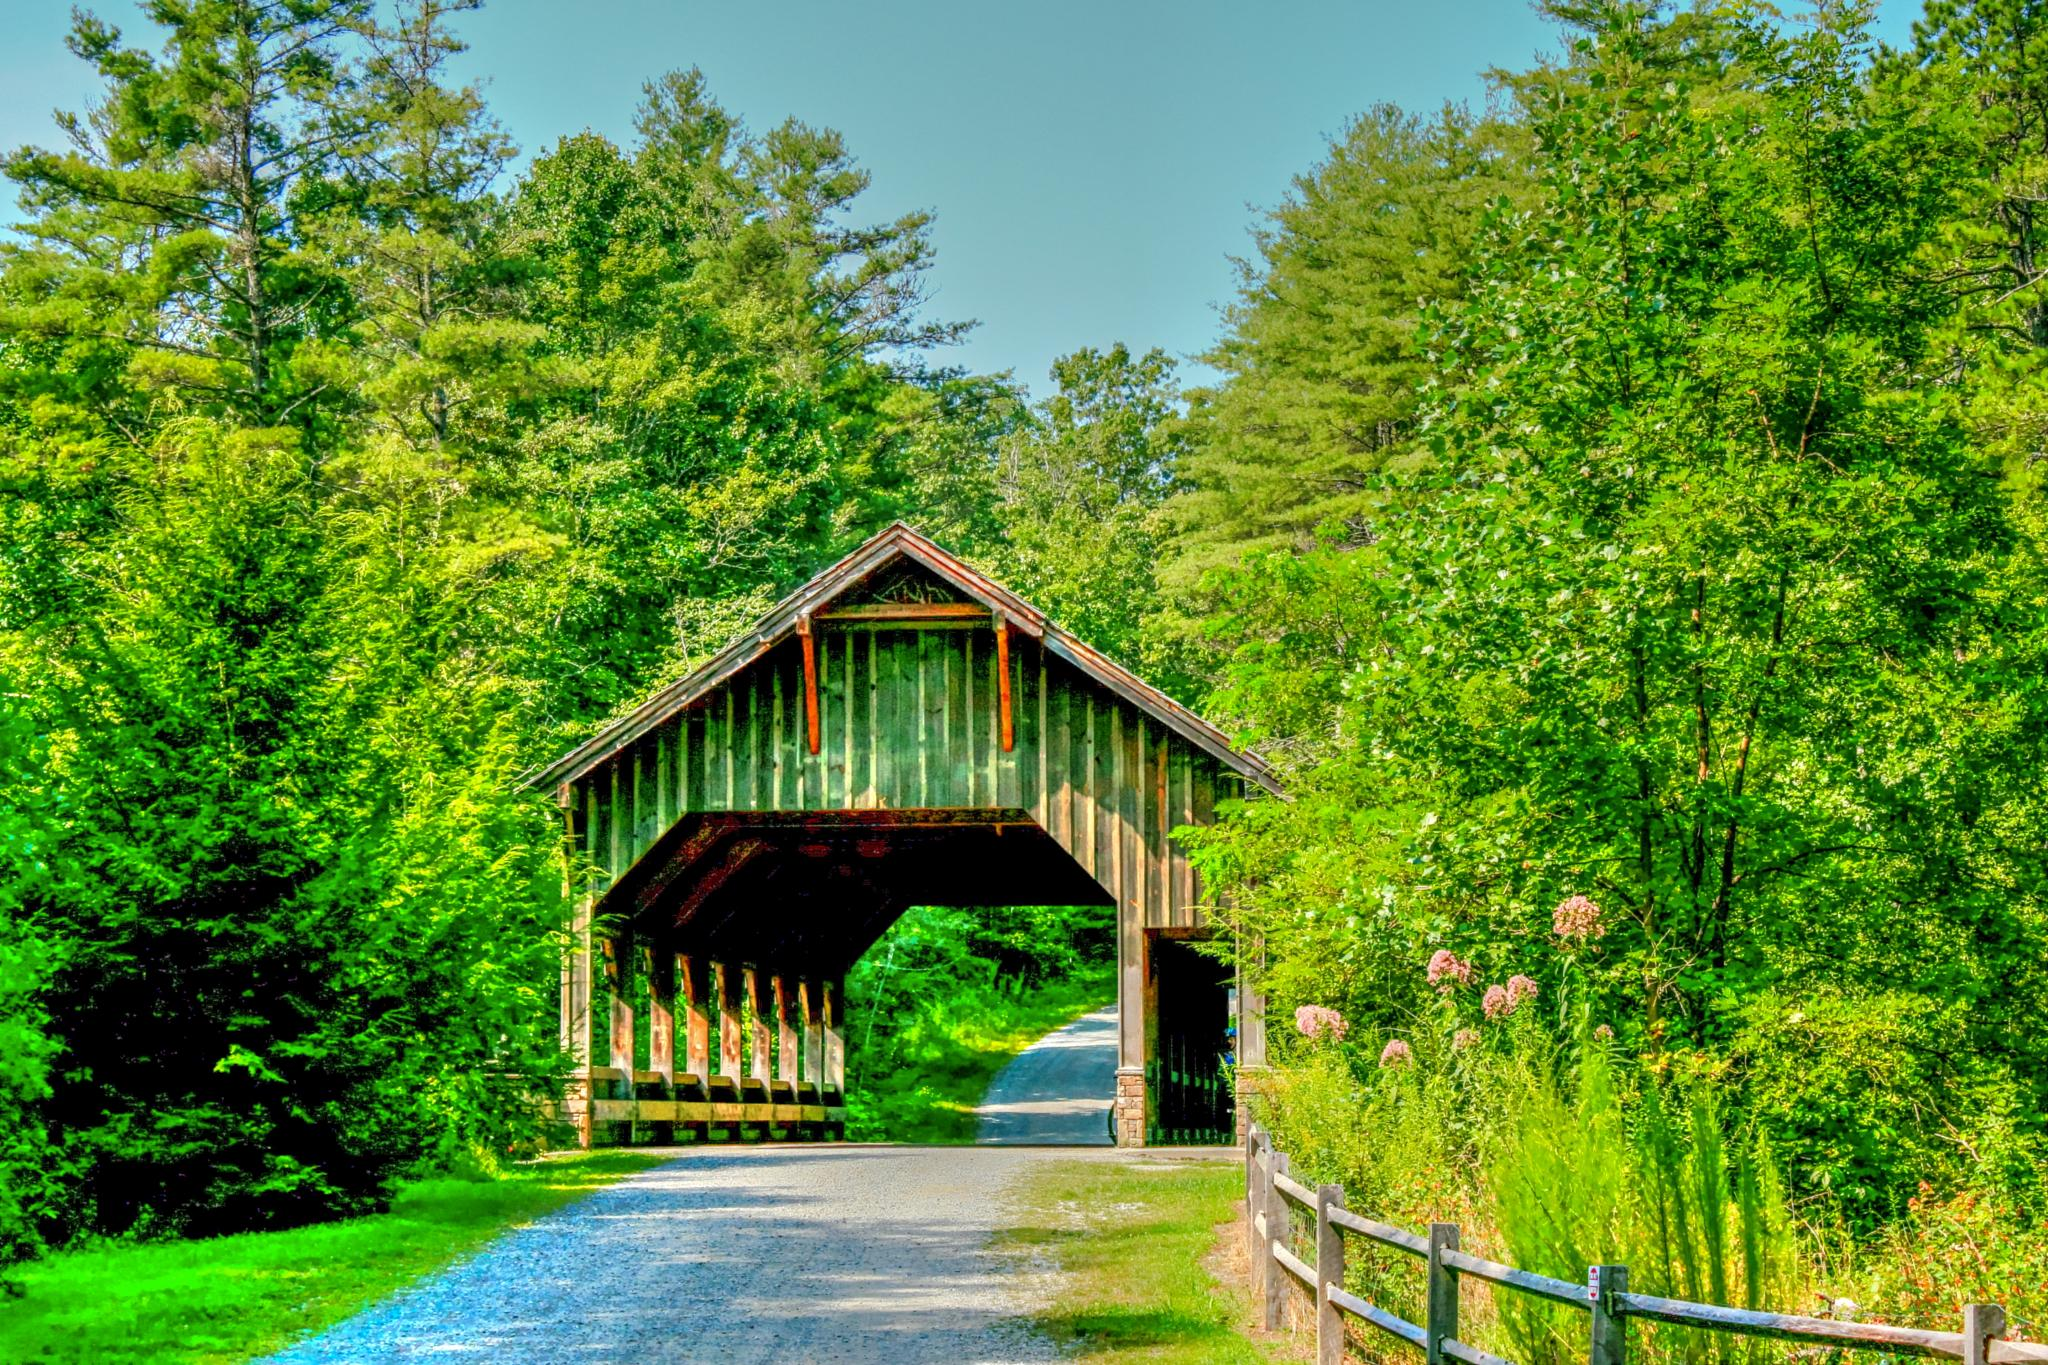 Covered Bridge by PovPhotographicArt